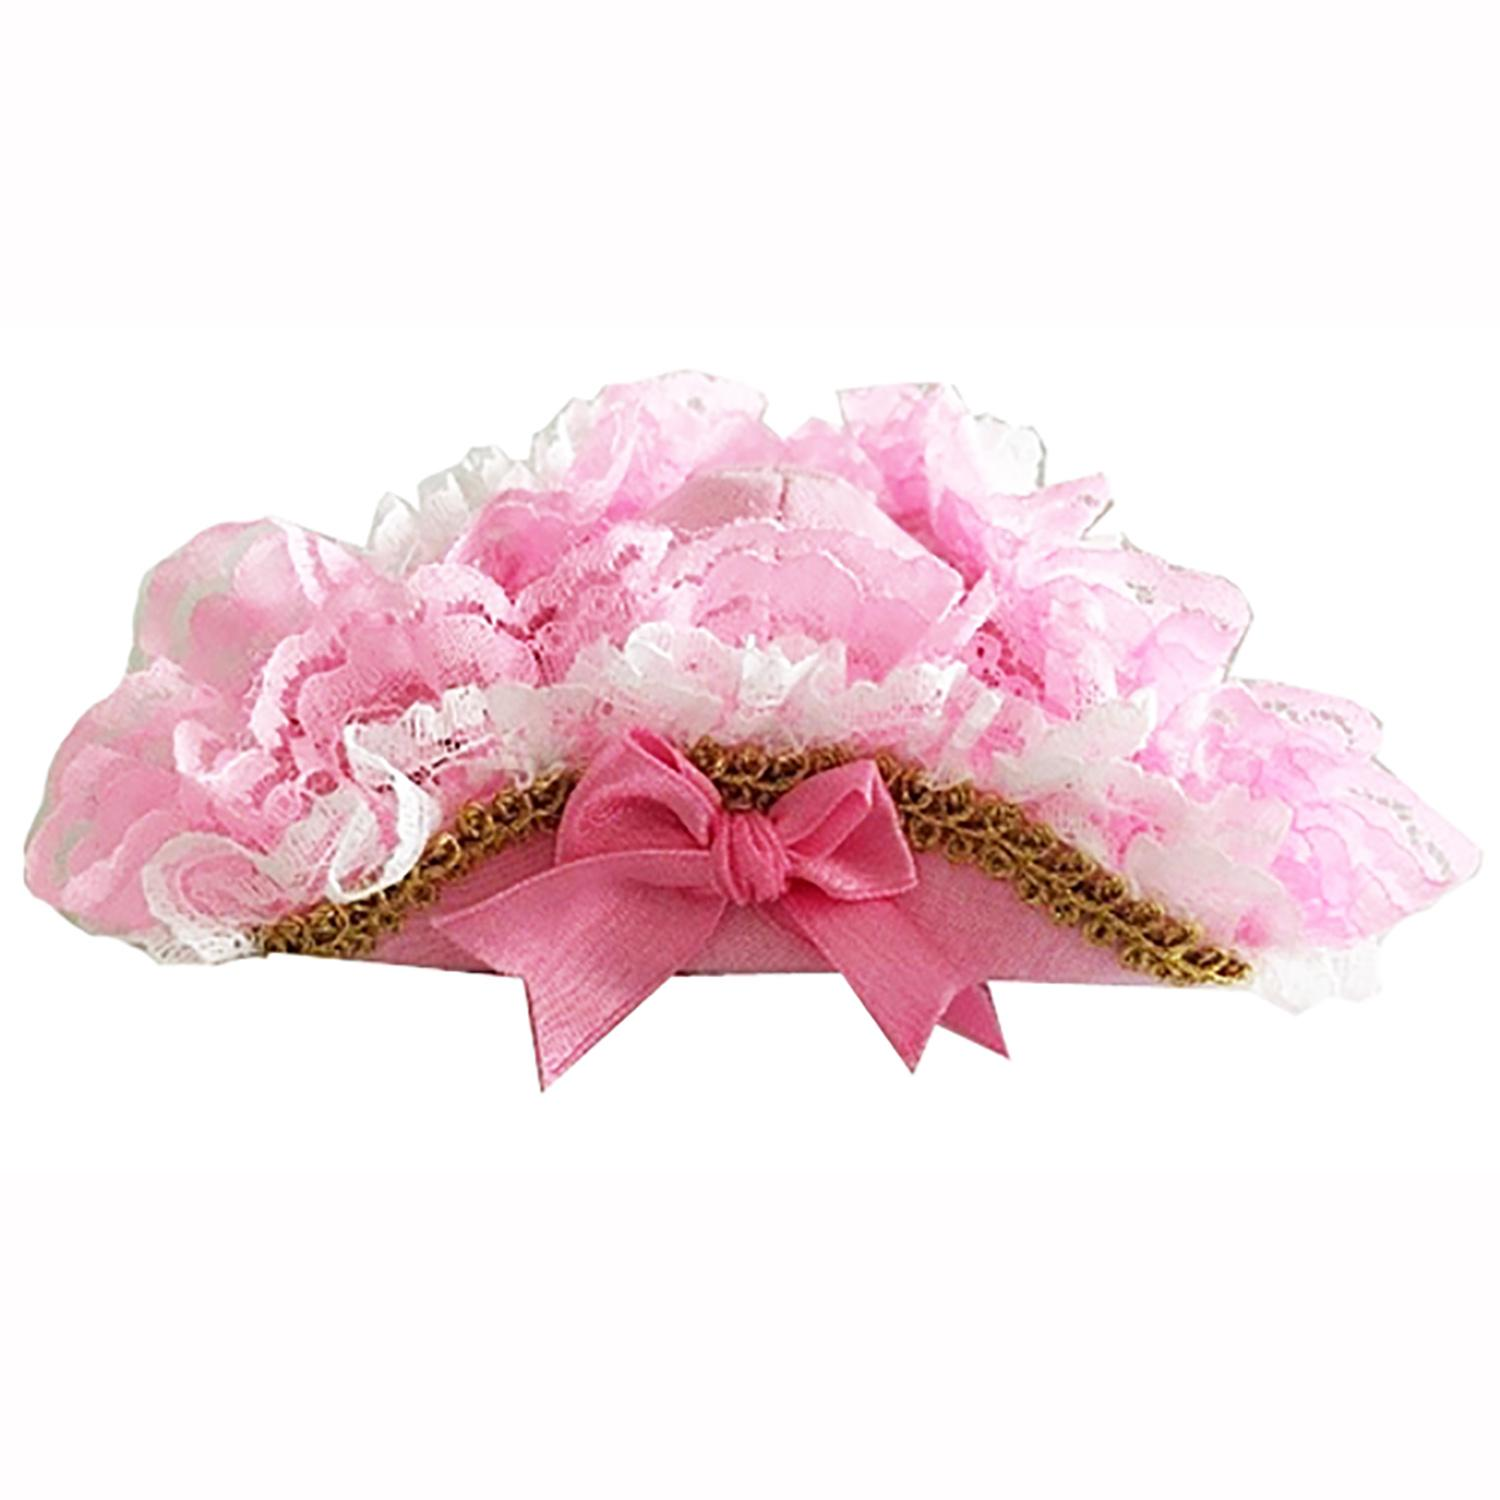 Victorian Lace Pirate Dog Hat - Pink